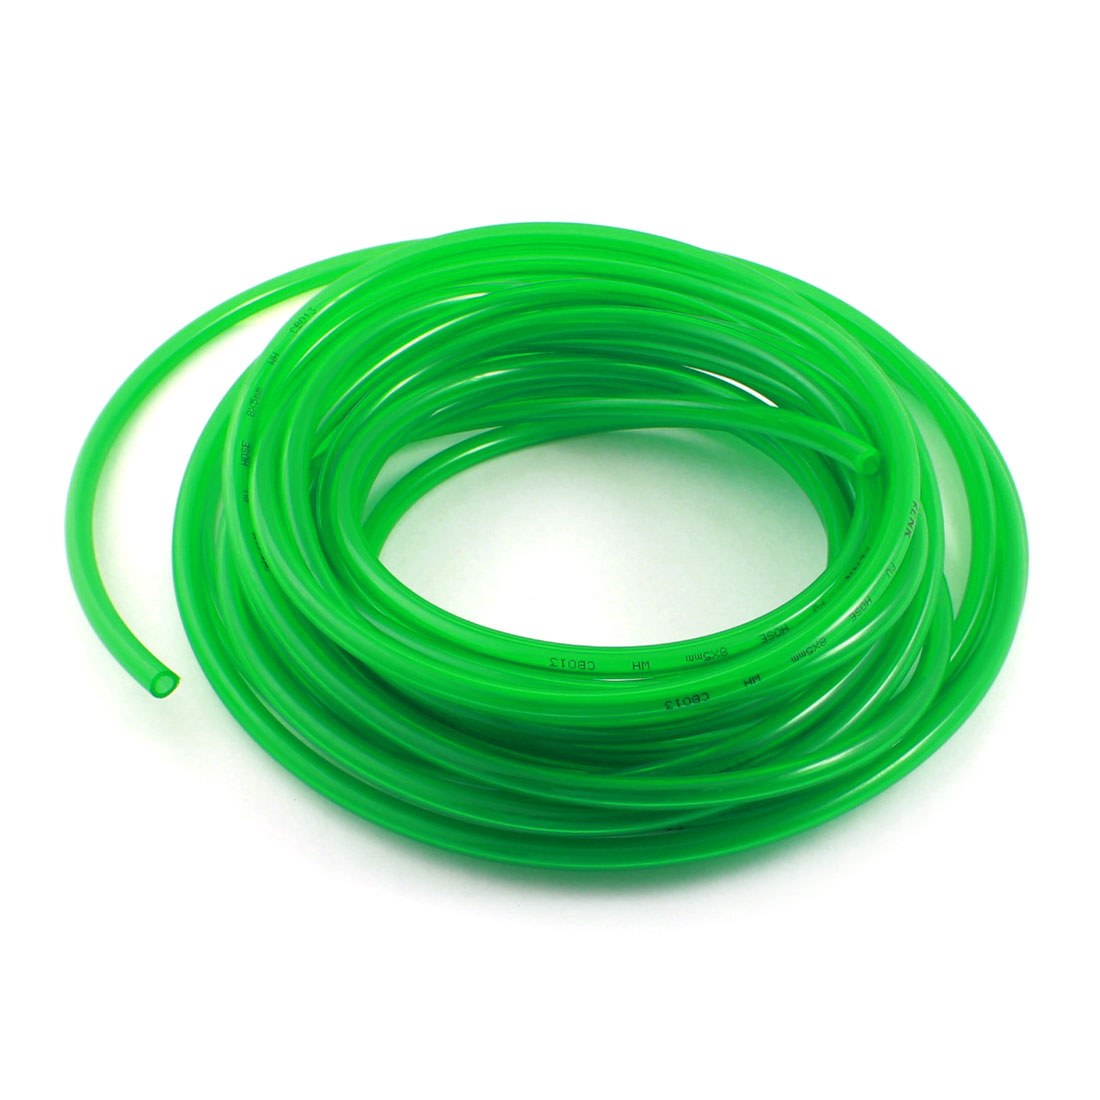 Engine Gas Fuel Oil Injection PU Line Tubing Tube 5mmx8mm Dia 33Ft Clear Green